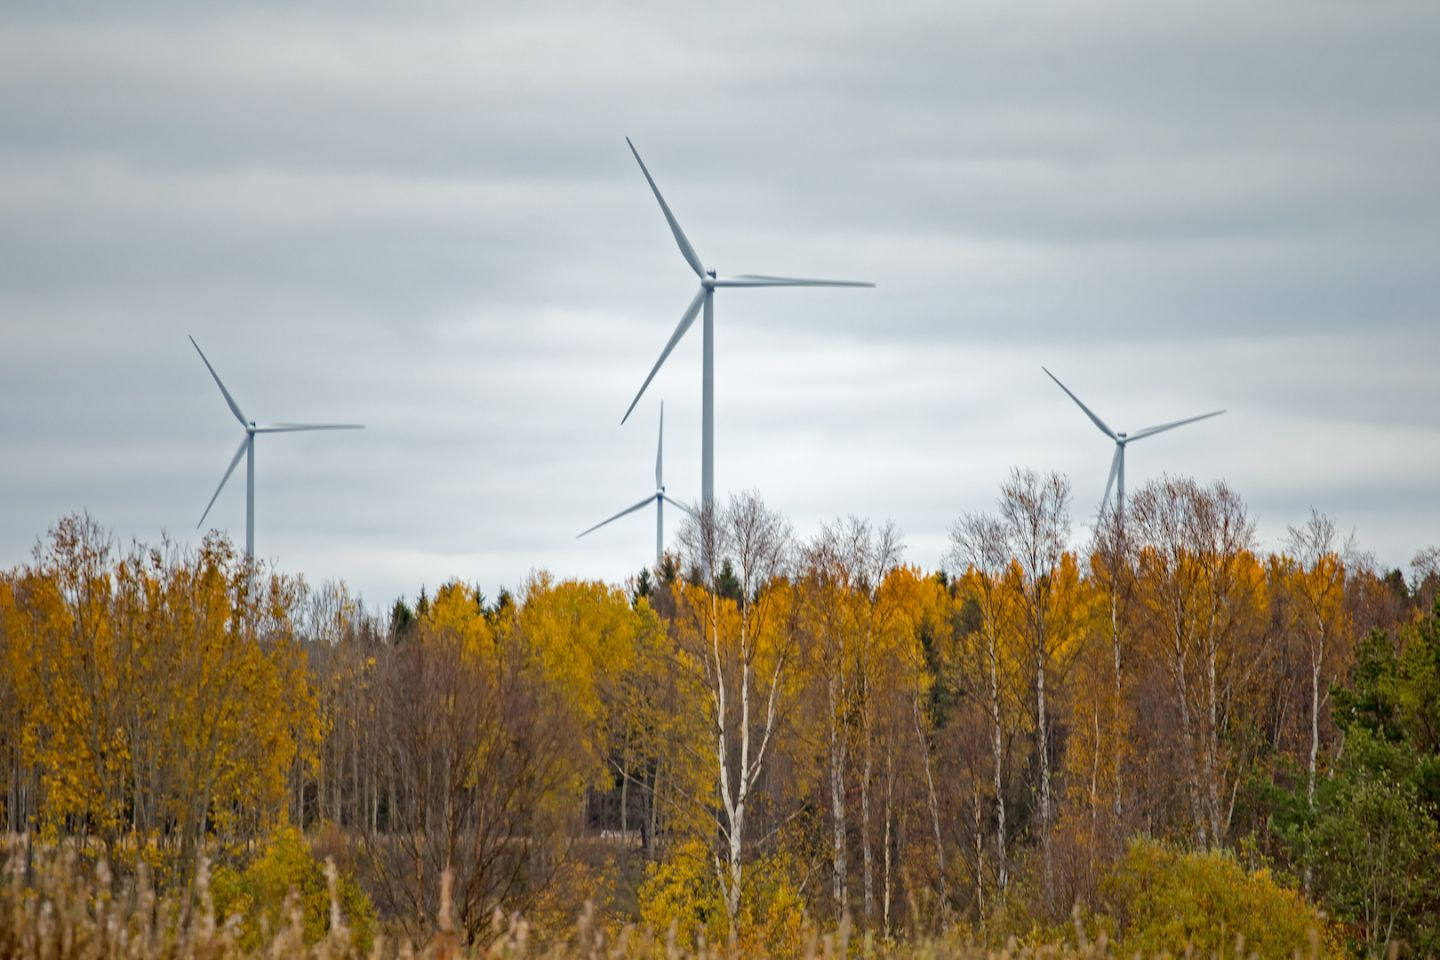 Wind turbines in Tervola Lapland